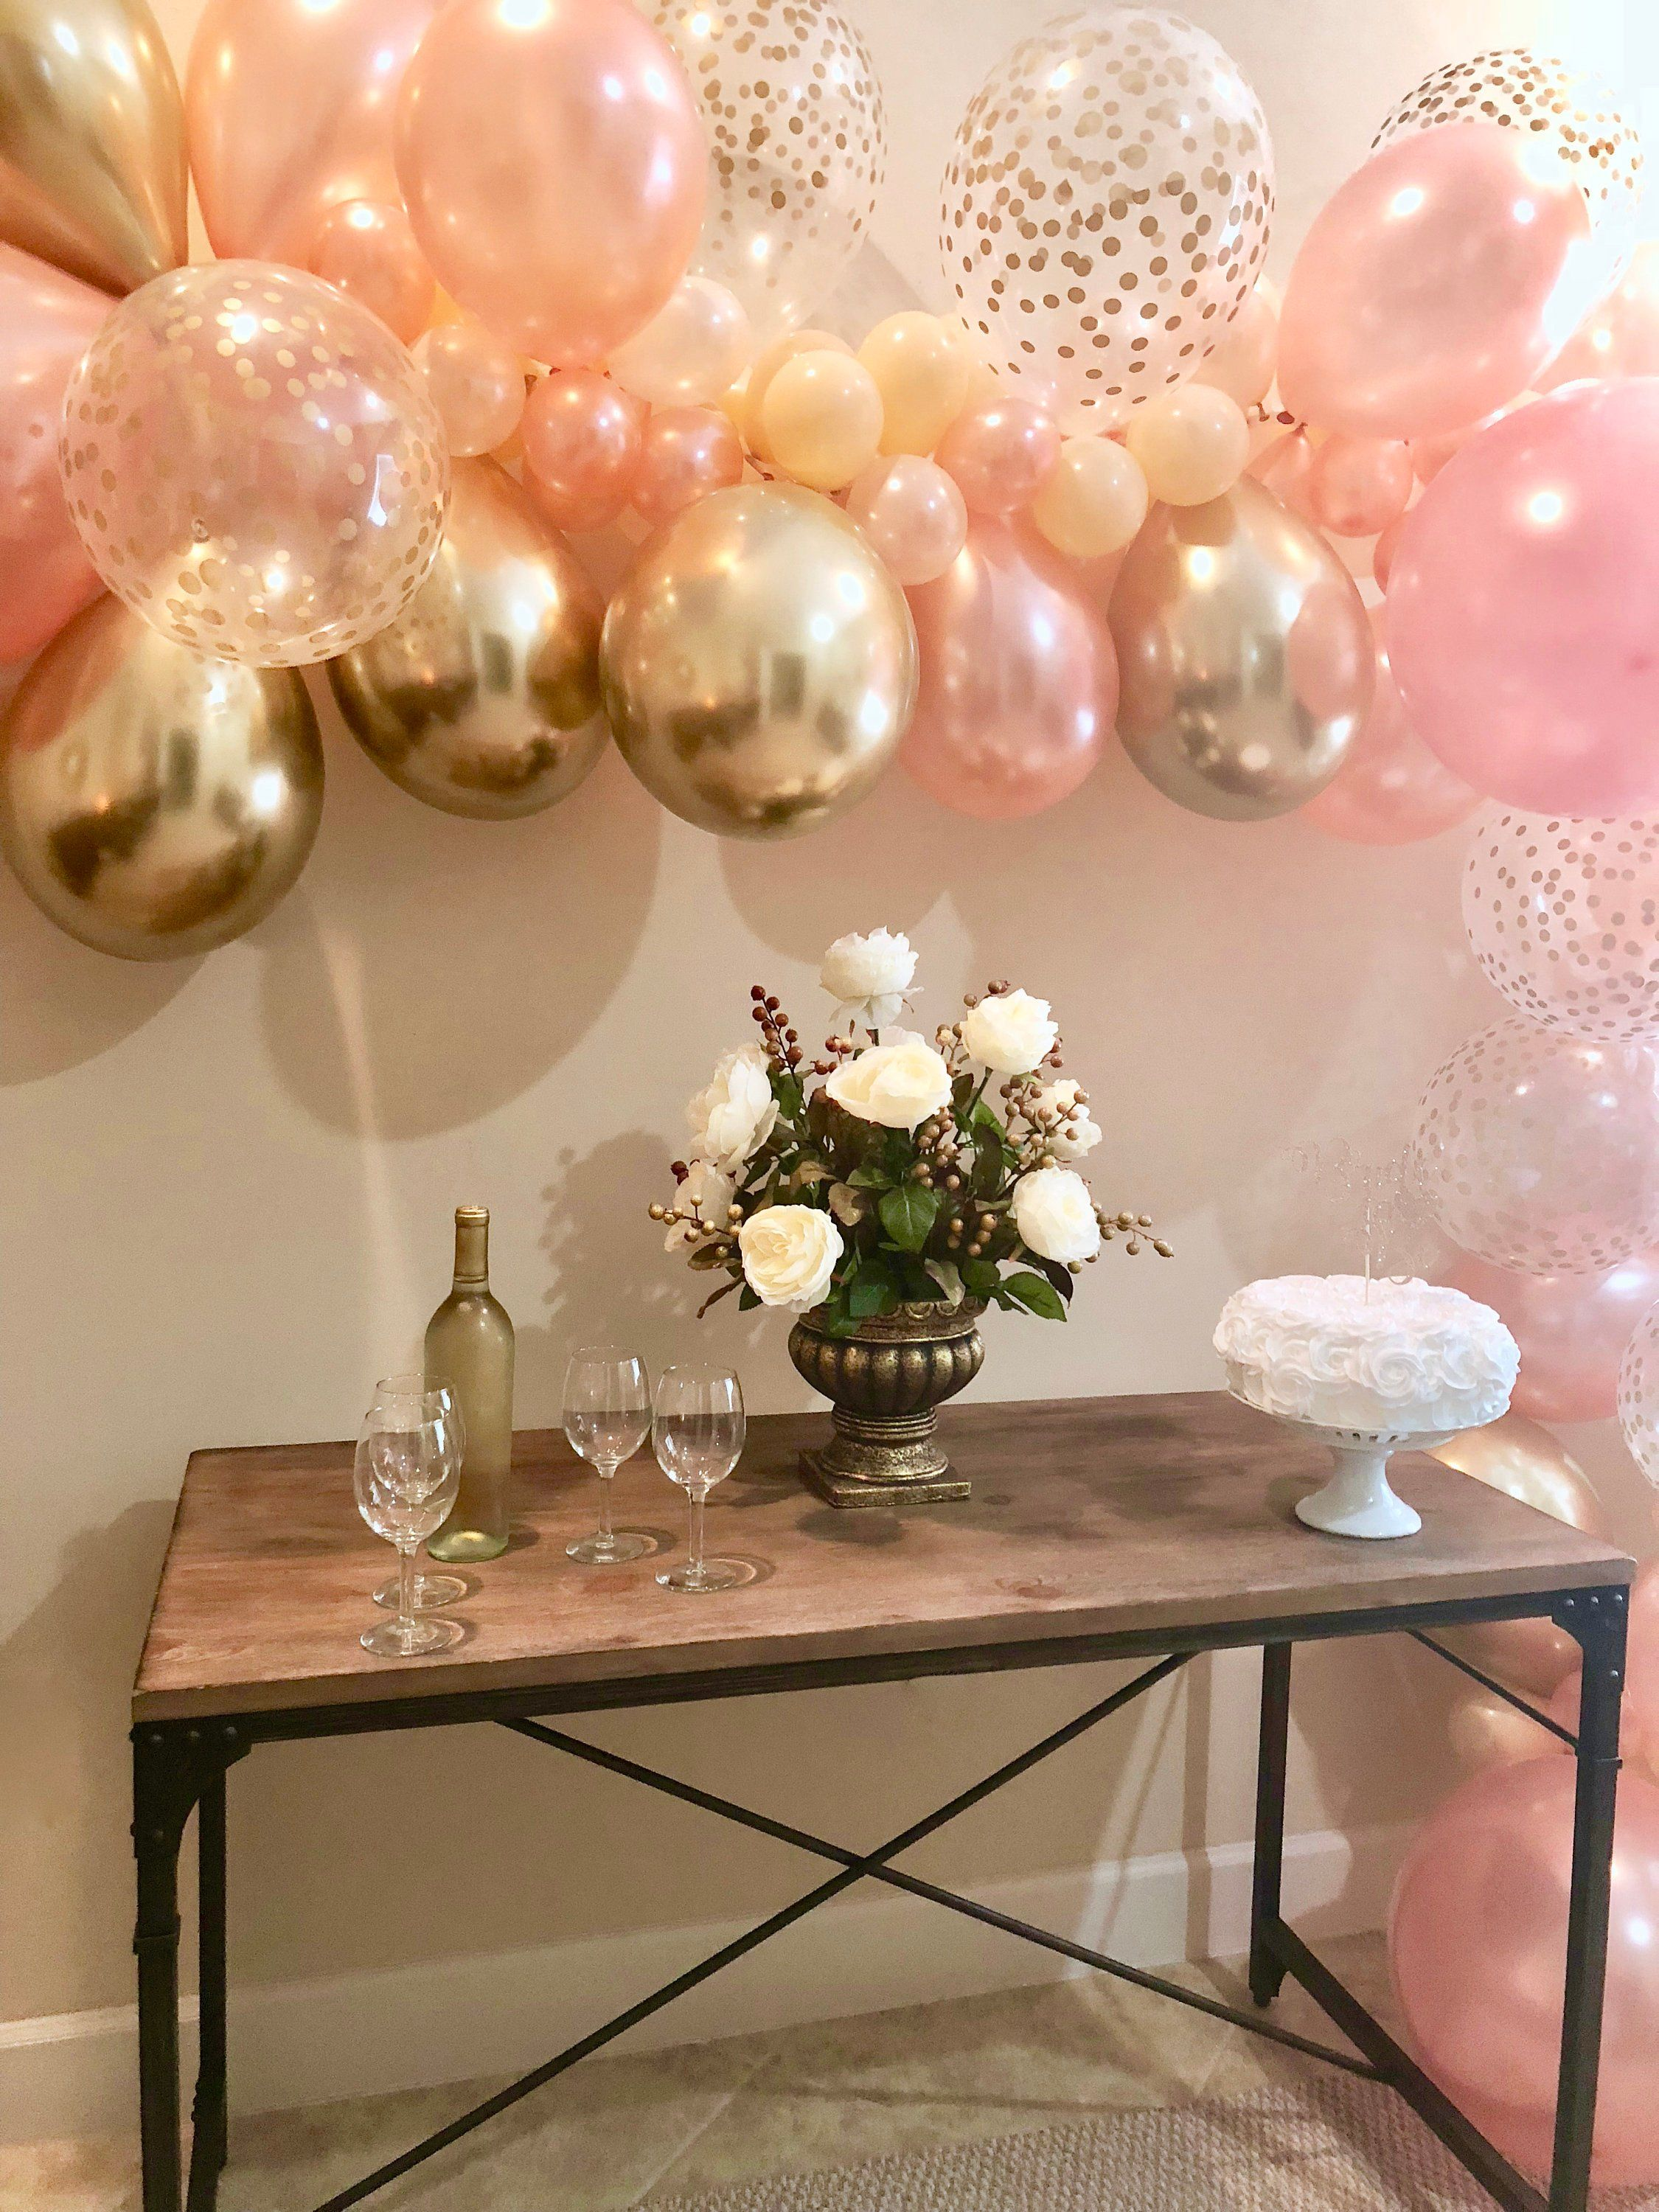 Rose Gold Balloon Garland DIY Kit Rose Gold New Chrome Gold